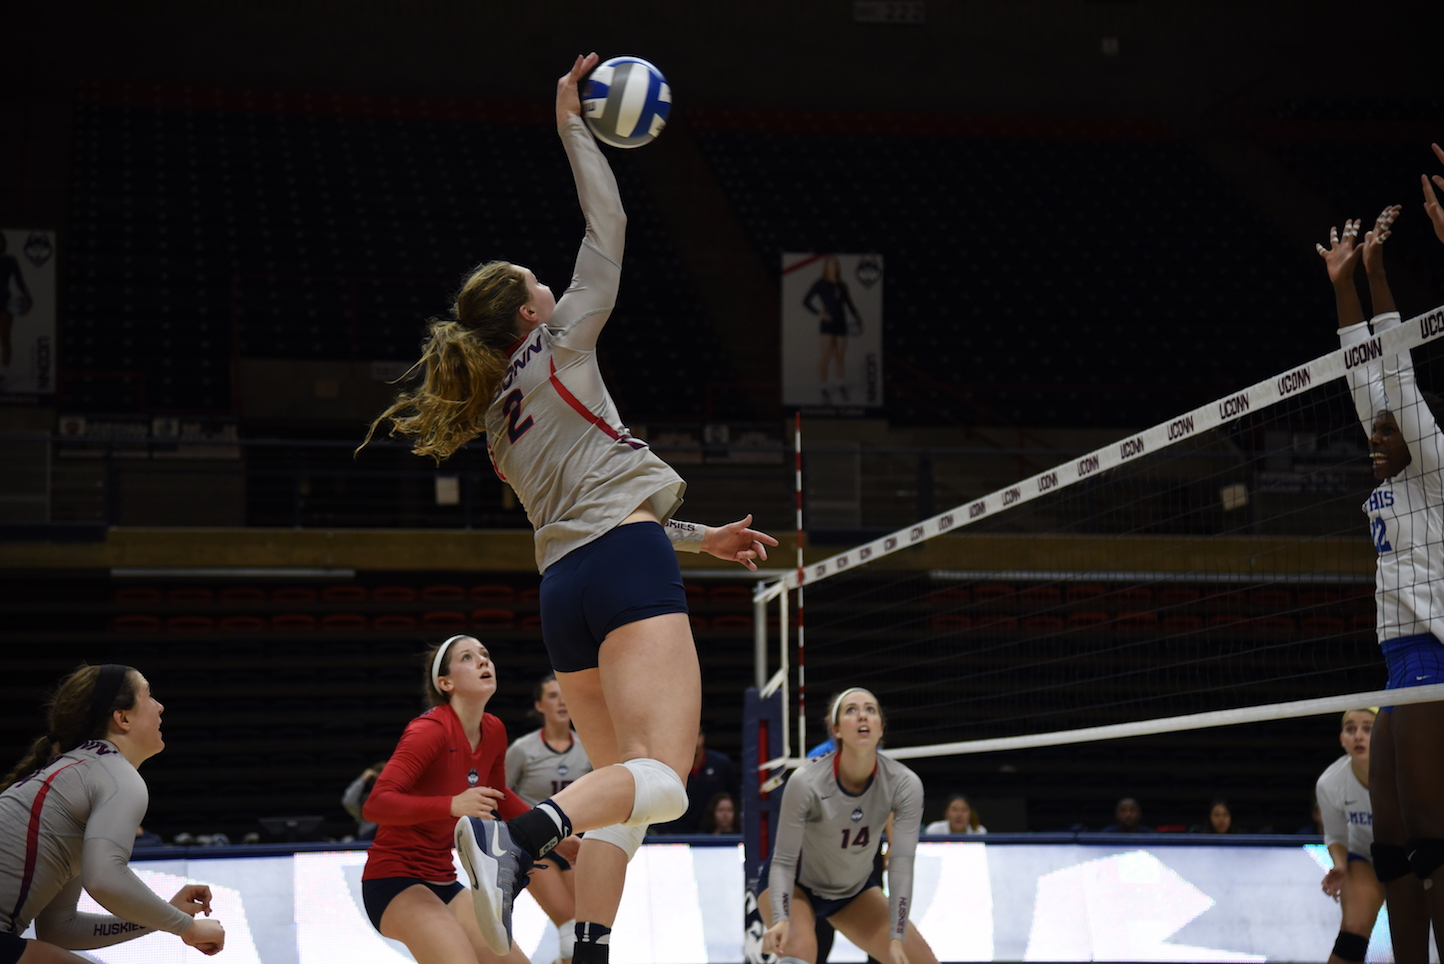 Outside hitter Danielle Cabel spikes the ball in an October 30th game against Memphis. The Huskies won 3-0. (Charlotte Lao/The Daily Campus)